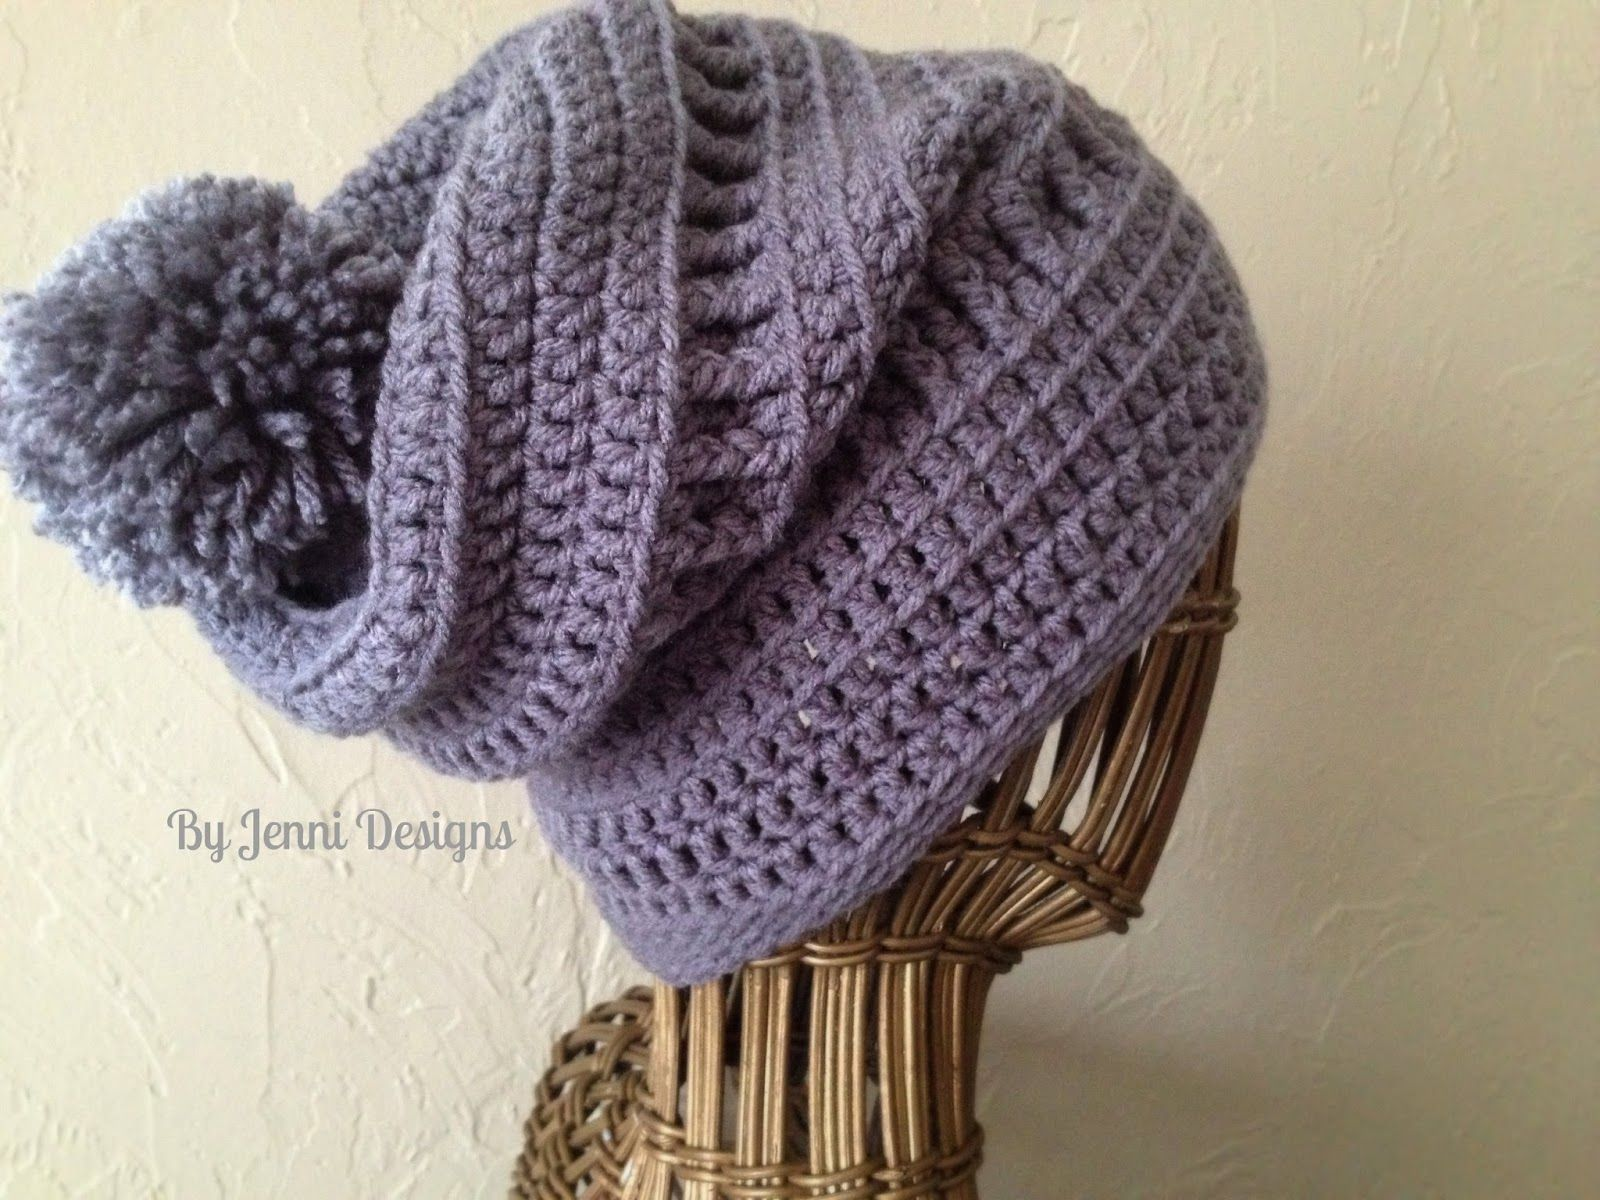 adefba9186c Slouchy Textured Beanie pattern by Jenni Catavu